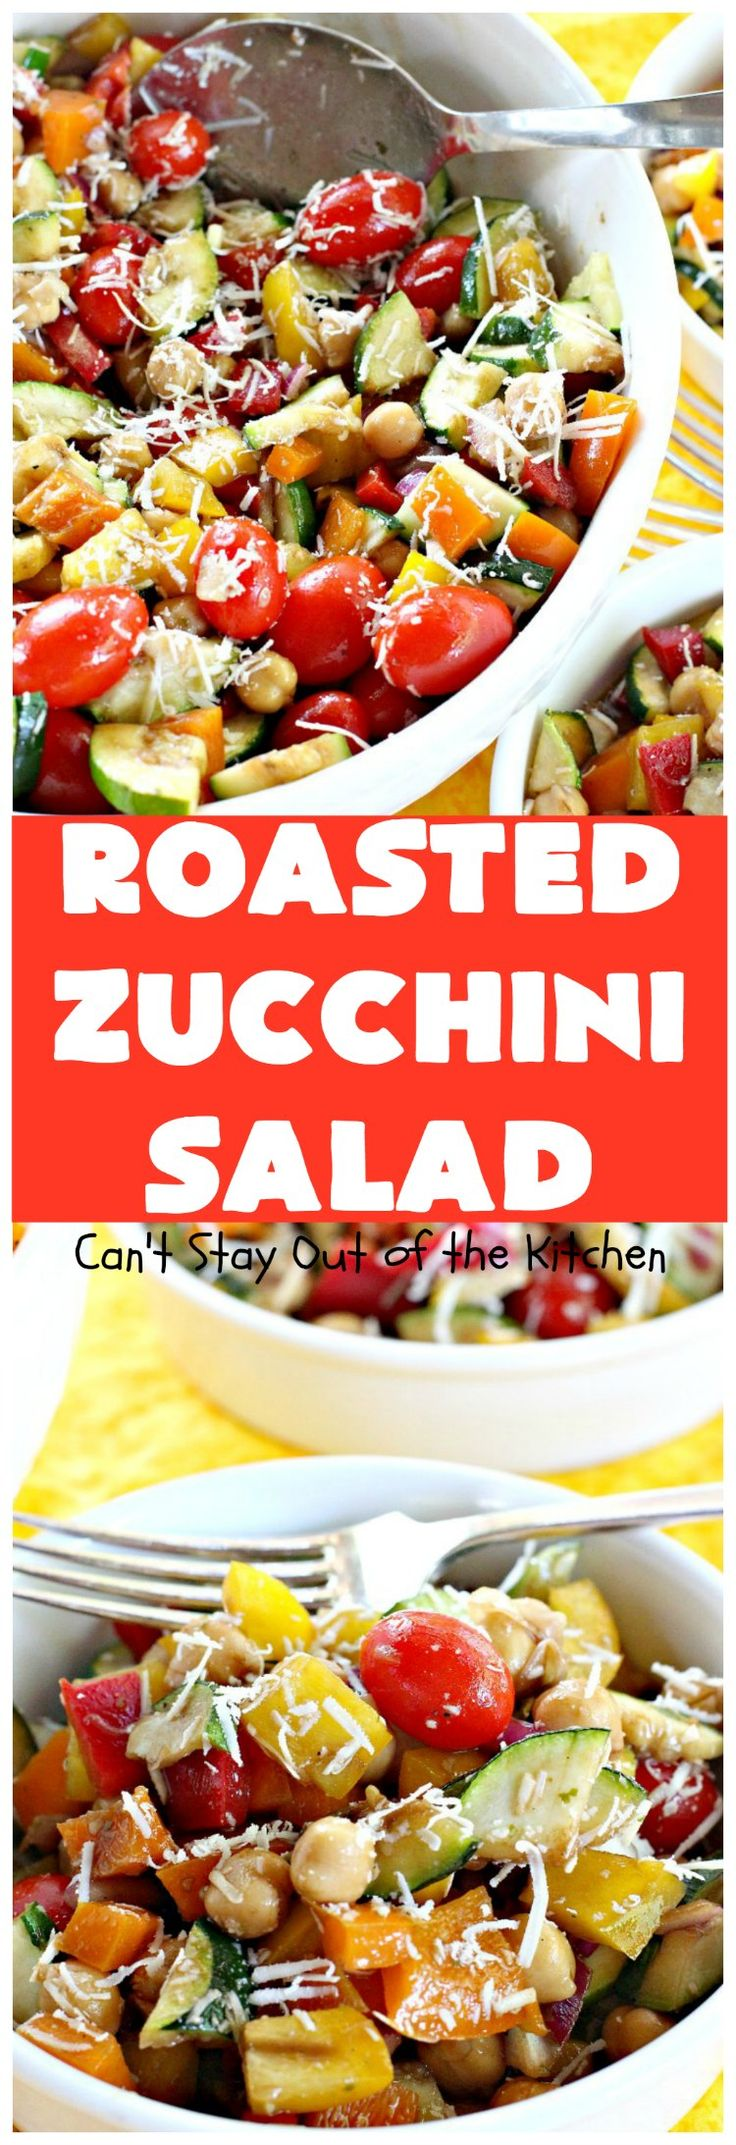 Roasted Zucchini Salad | Can't Stay Out of the Kitchen | this amazing #salad is chocked full of #veggies. It's perfect for potlucks, #BBQs and #LaborDay parties. #glutenfree #zucchini #parmesancheese